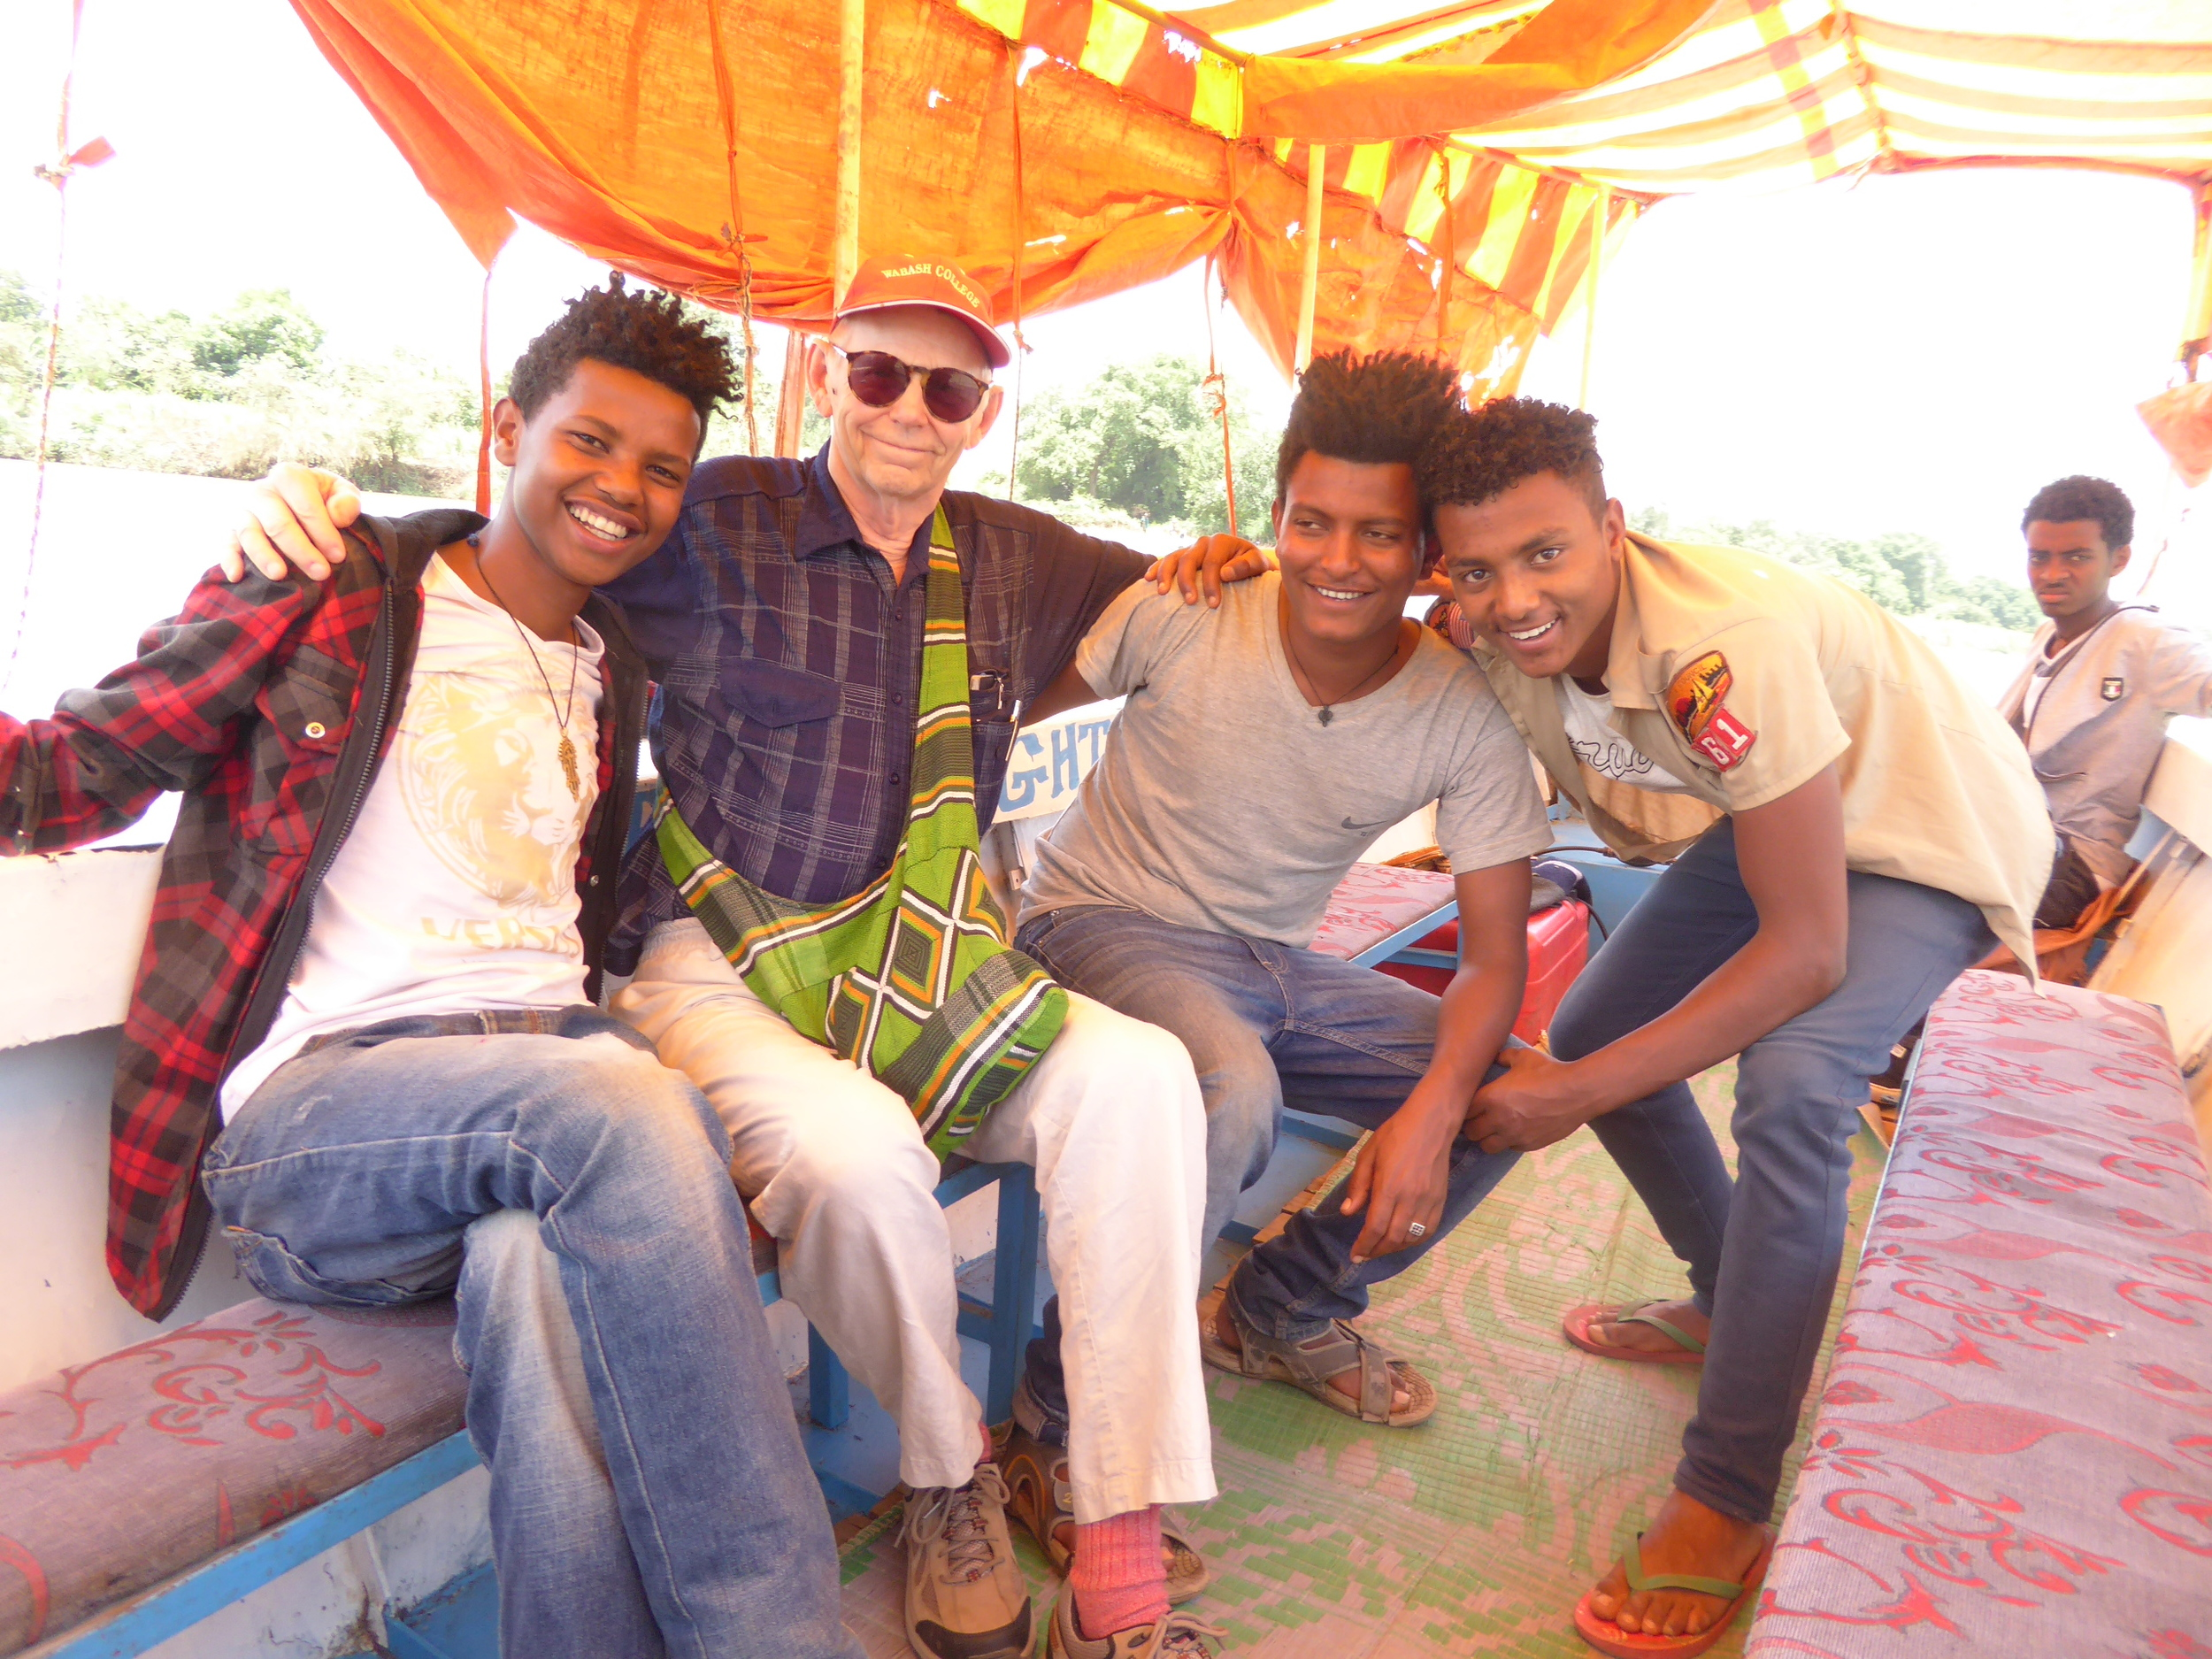 Bill with Yohannes, Abu, and Mareg on an outing by boat to visit a monastery in Lake Tana near Bahar Dar.